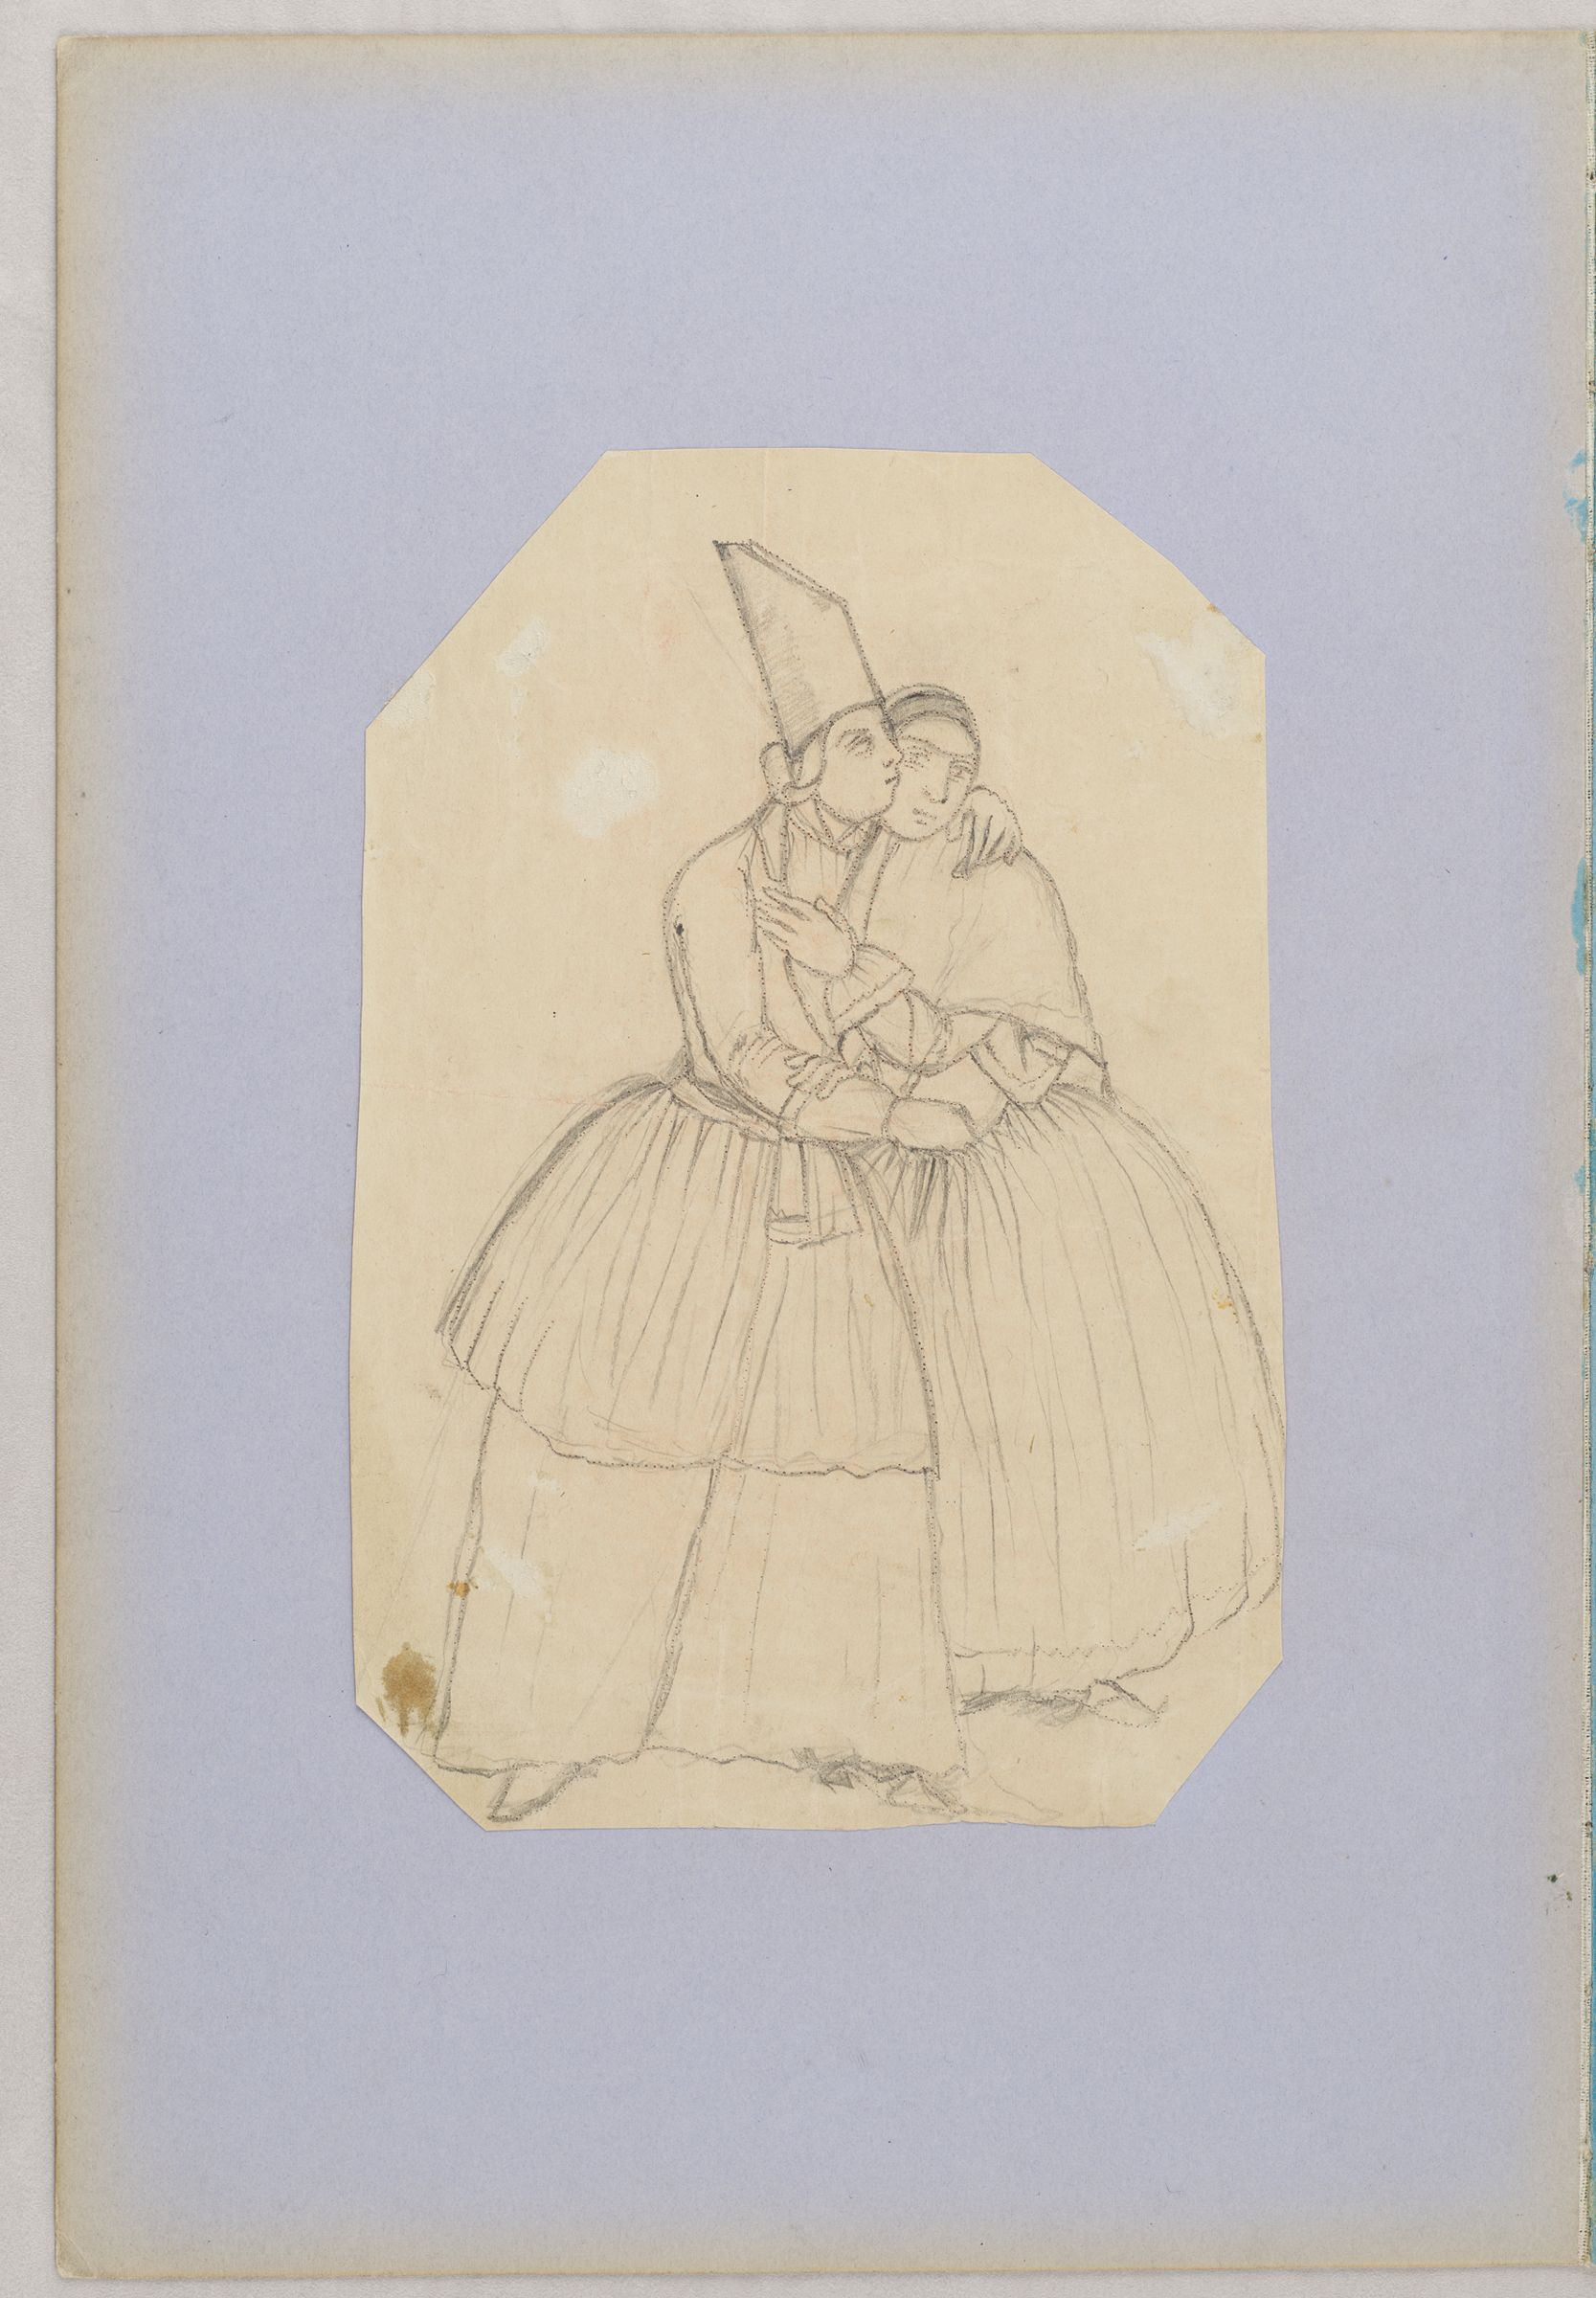 Folio 5 From An Album Of Drawings And Paintings: Embracing Couple (Recto); Seated Woman And Child In Classical Dress With Kneeling Attendant And Peacock (Verso)